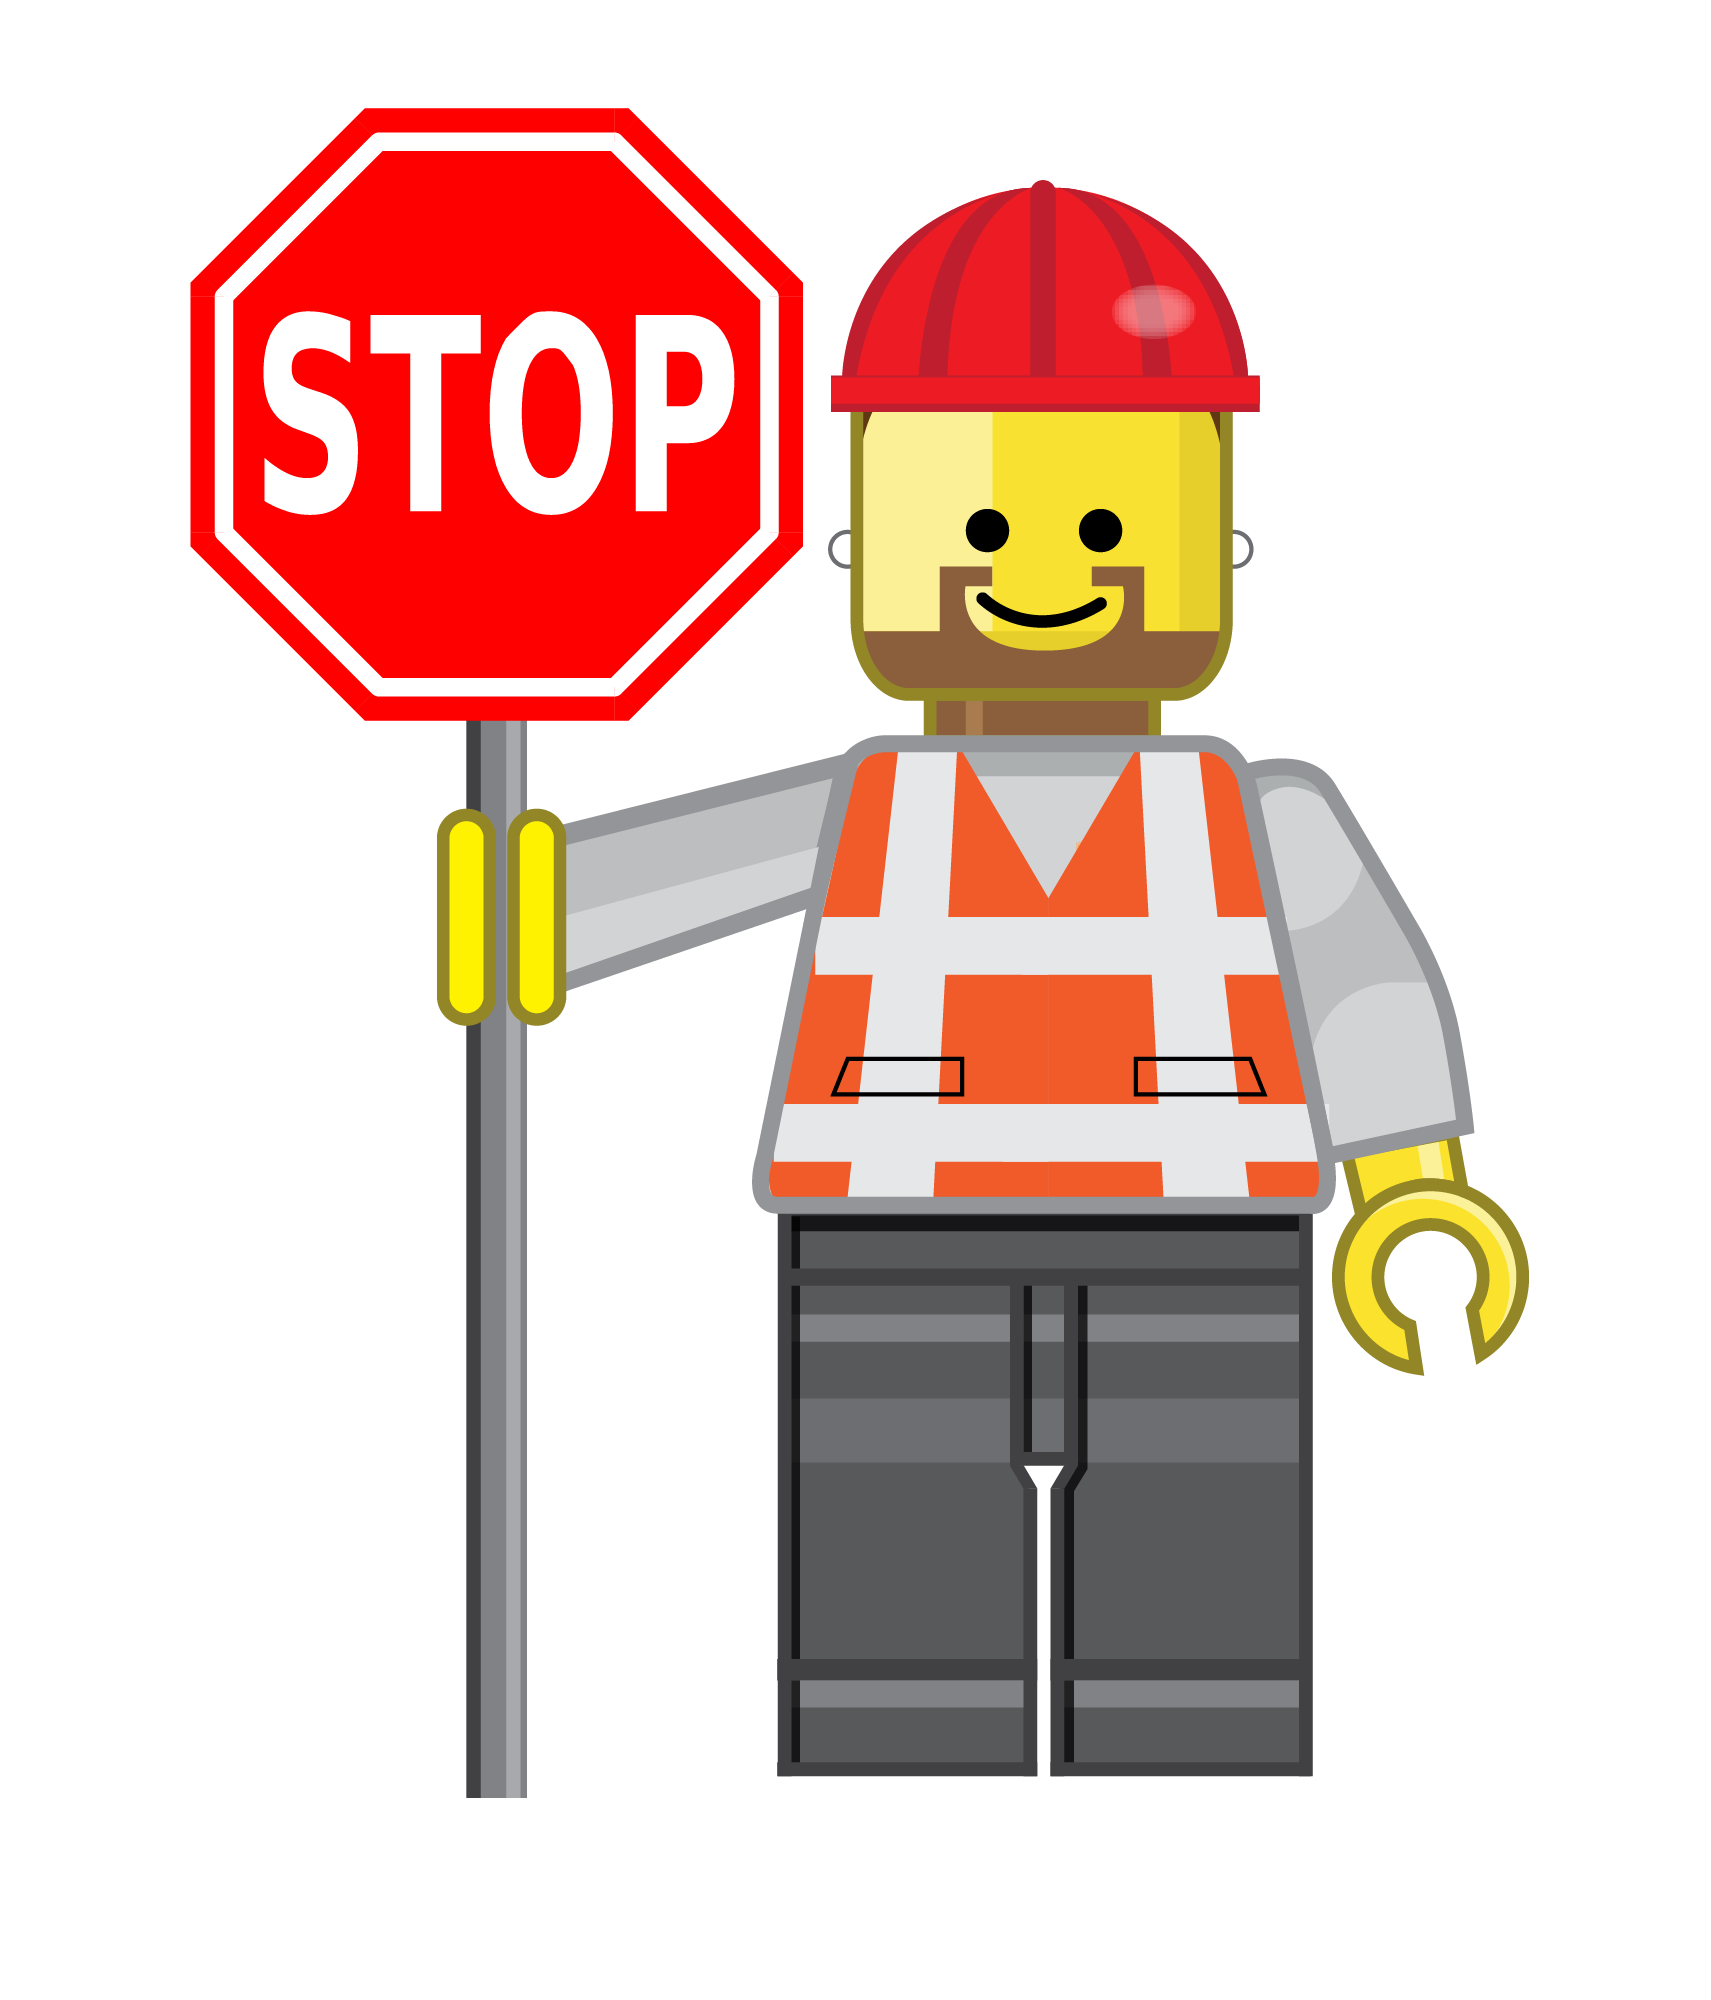 bITD_lego_B2 construction.png